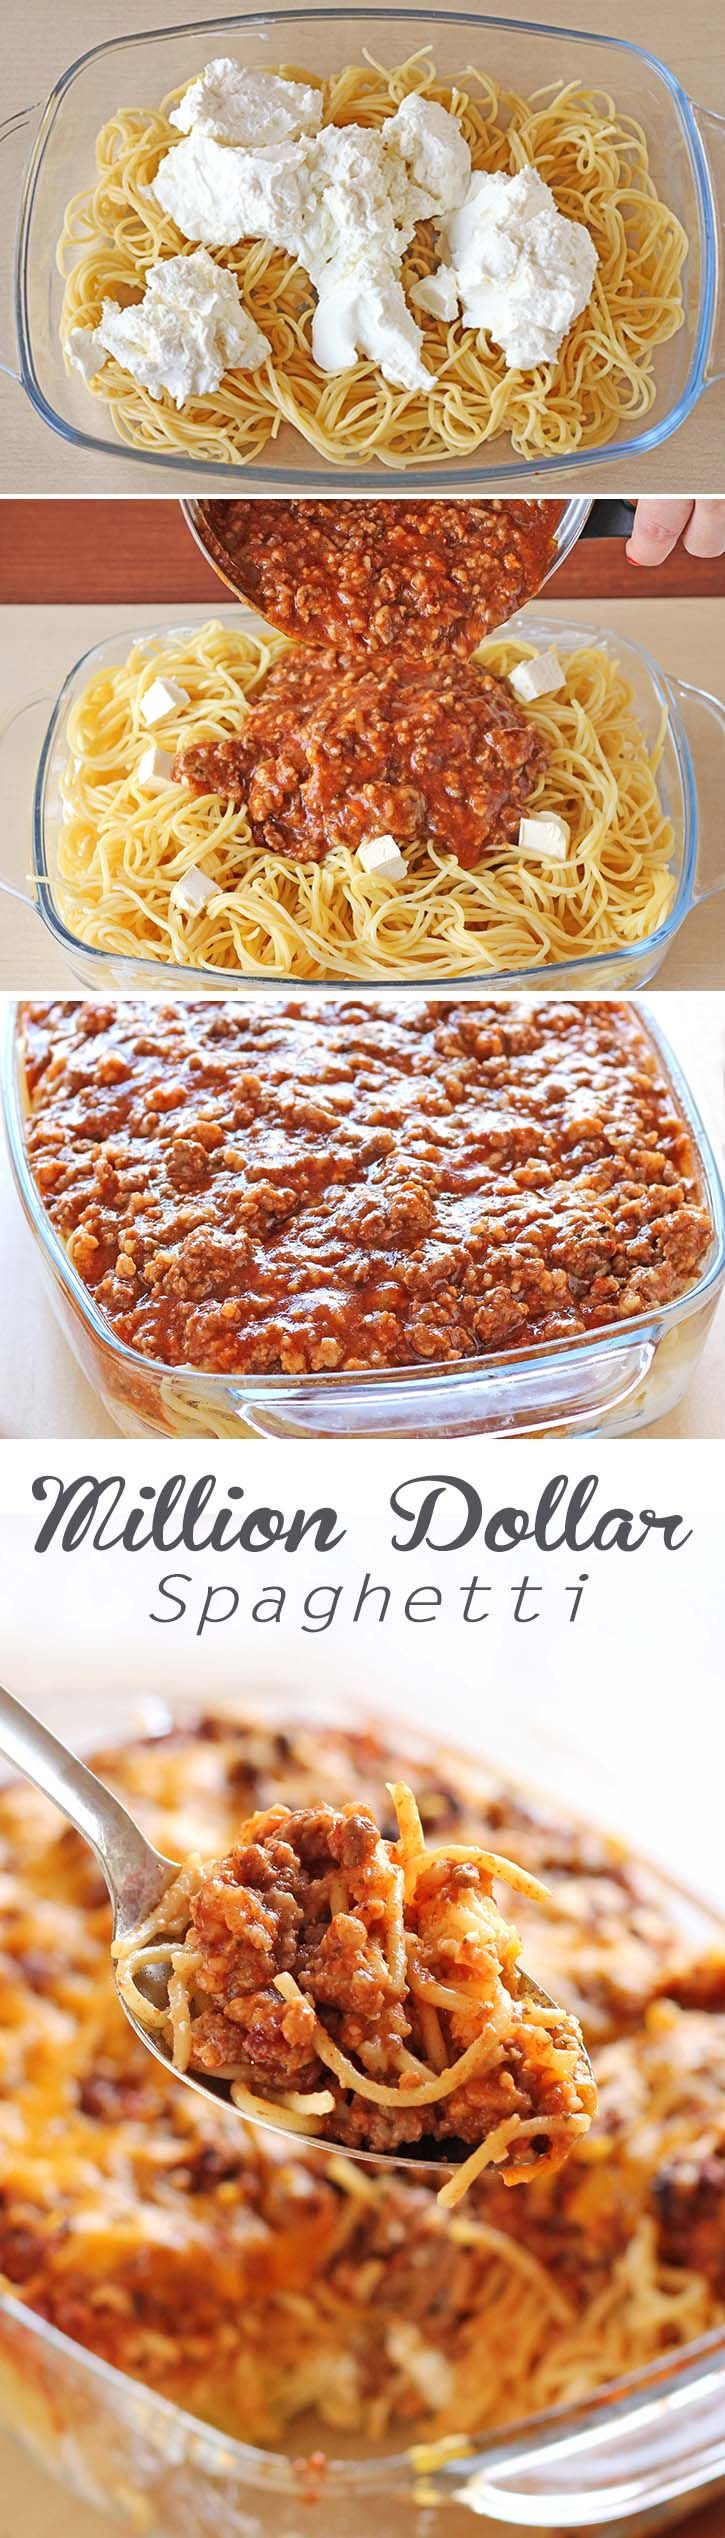 cheap flights to new york from florida to coahuila Spaghetti  spaghetti sauce  beef and cream cheese mixture meal     that tastes like a million bucks